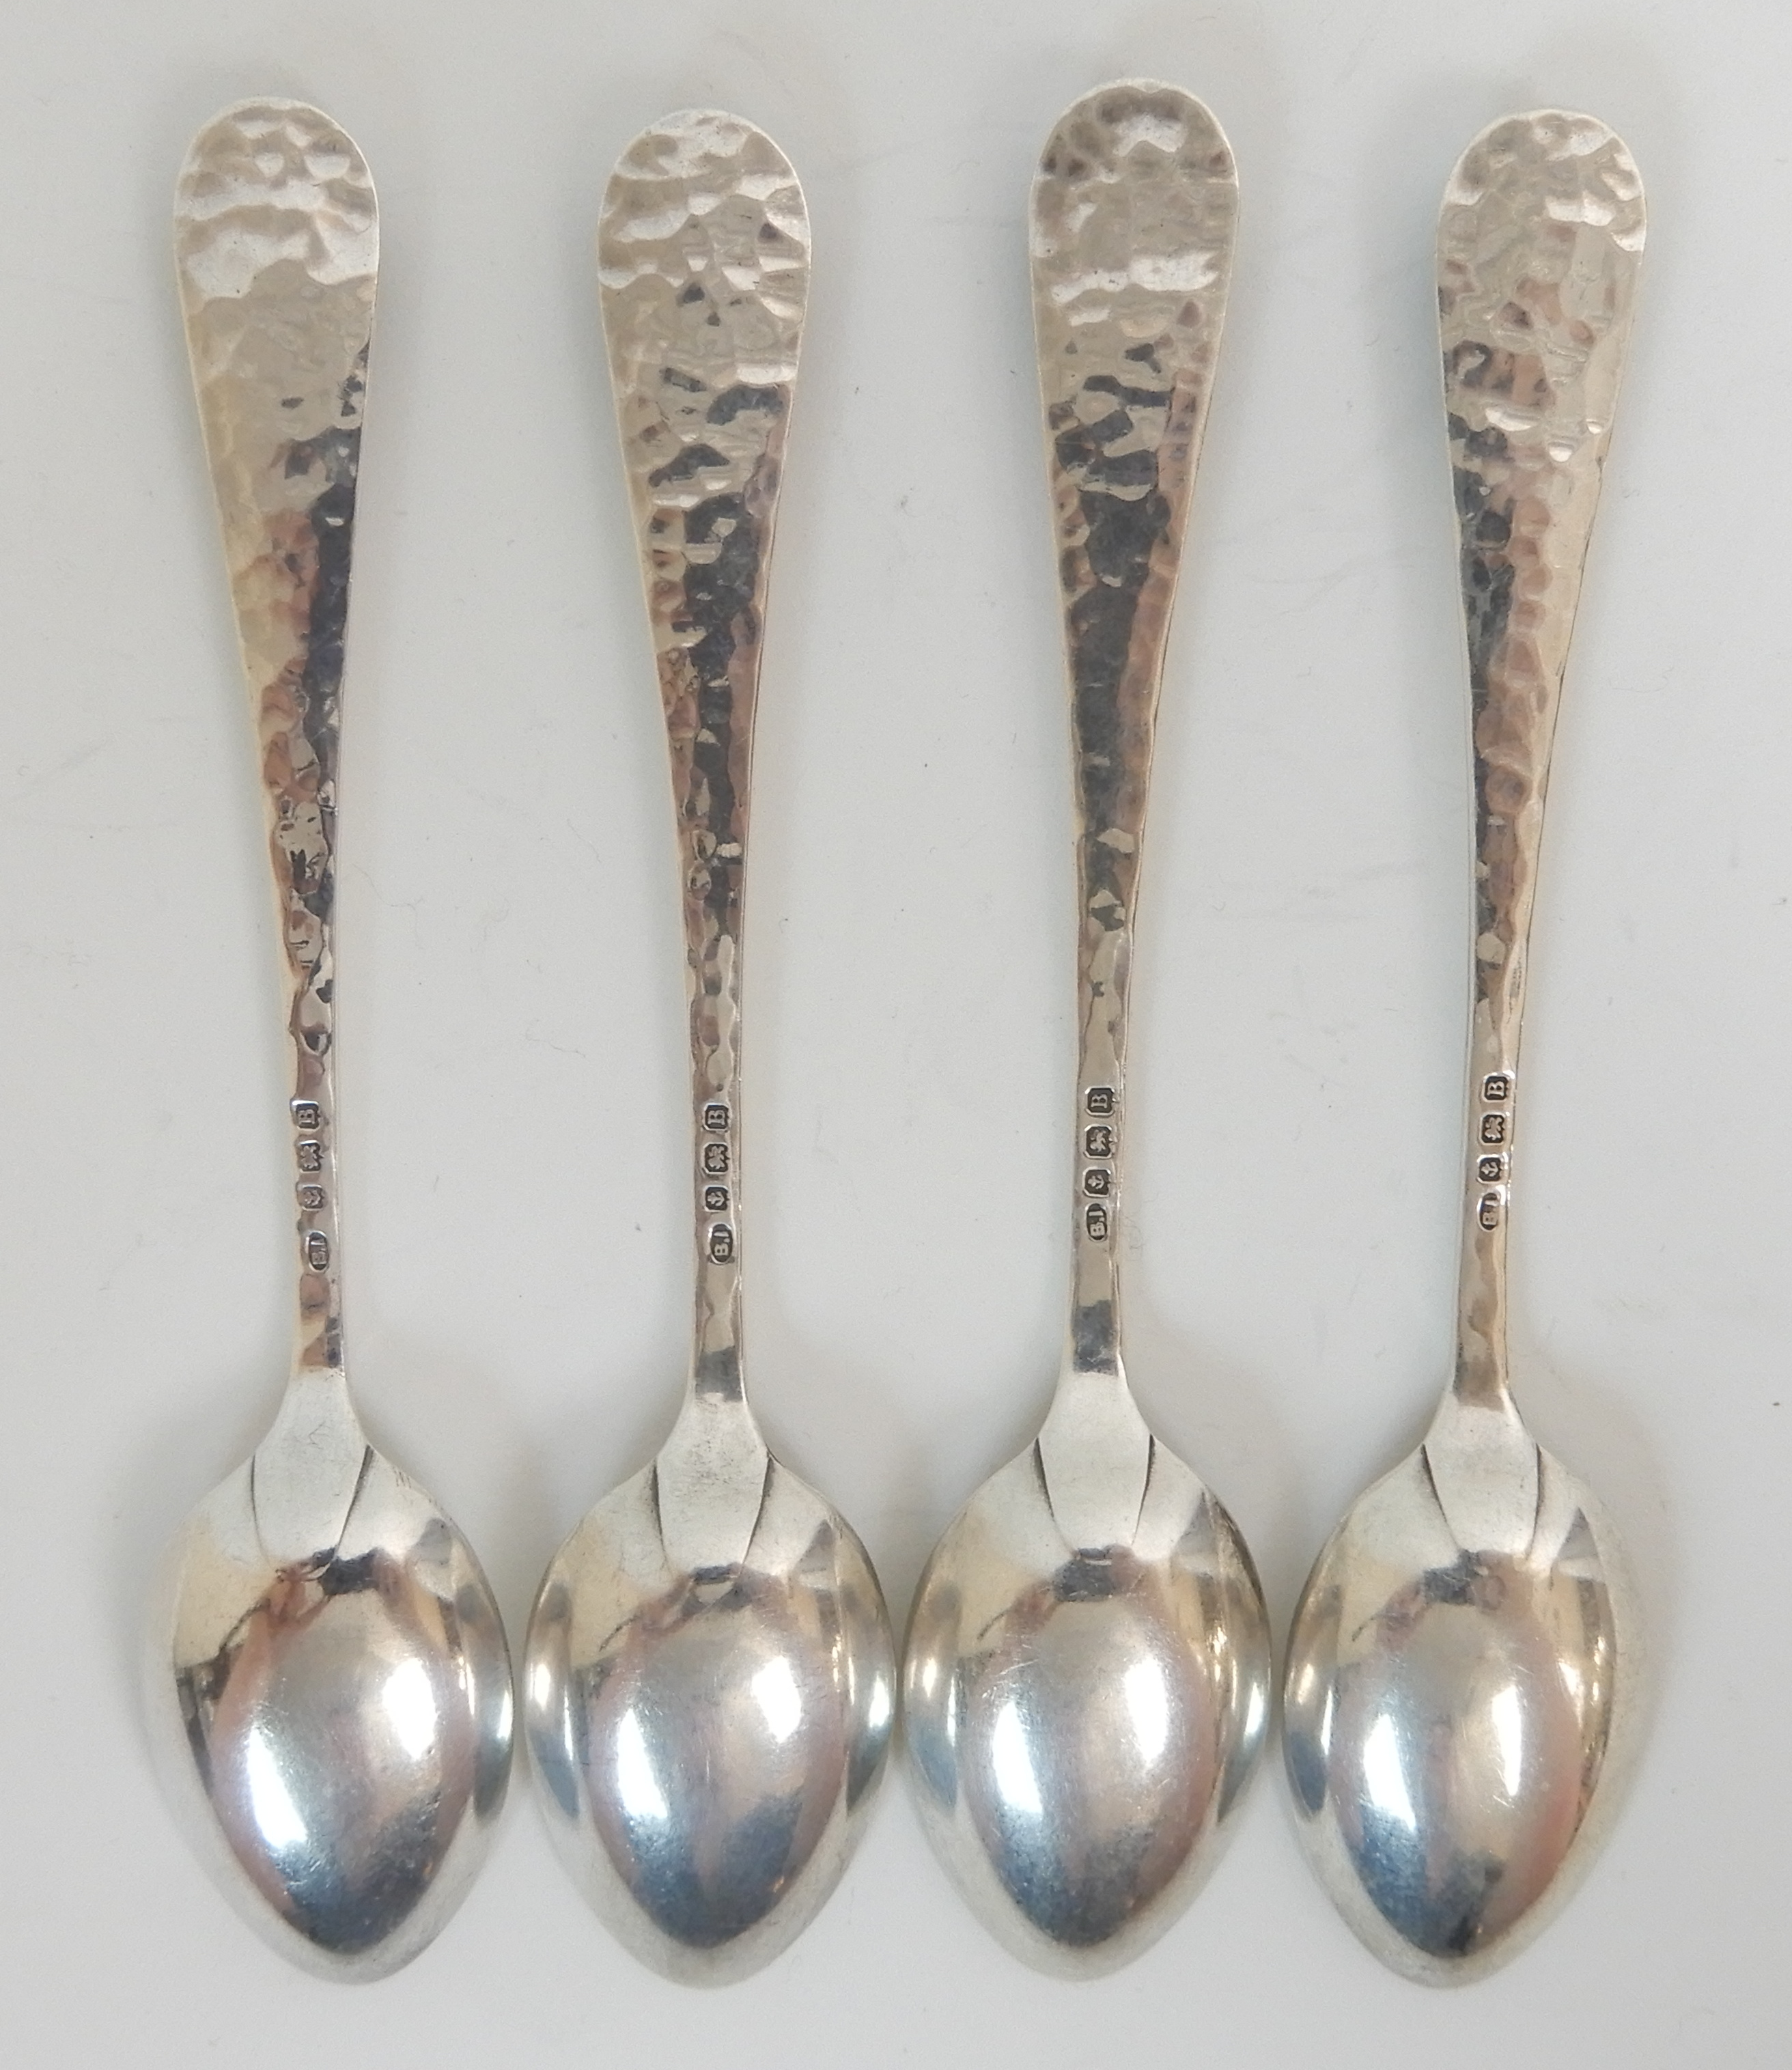 Lot 138 - A SET OF FOUR ARTS AND CRAFTS HAMMERED SILVER COFFEE SPOONS by Langstone Silver Works (Bernard